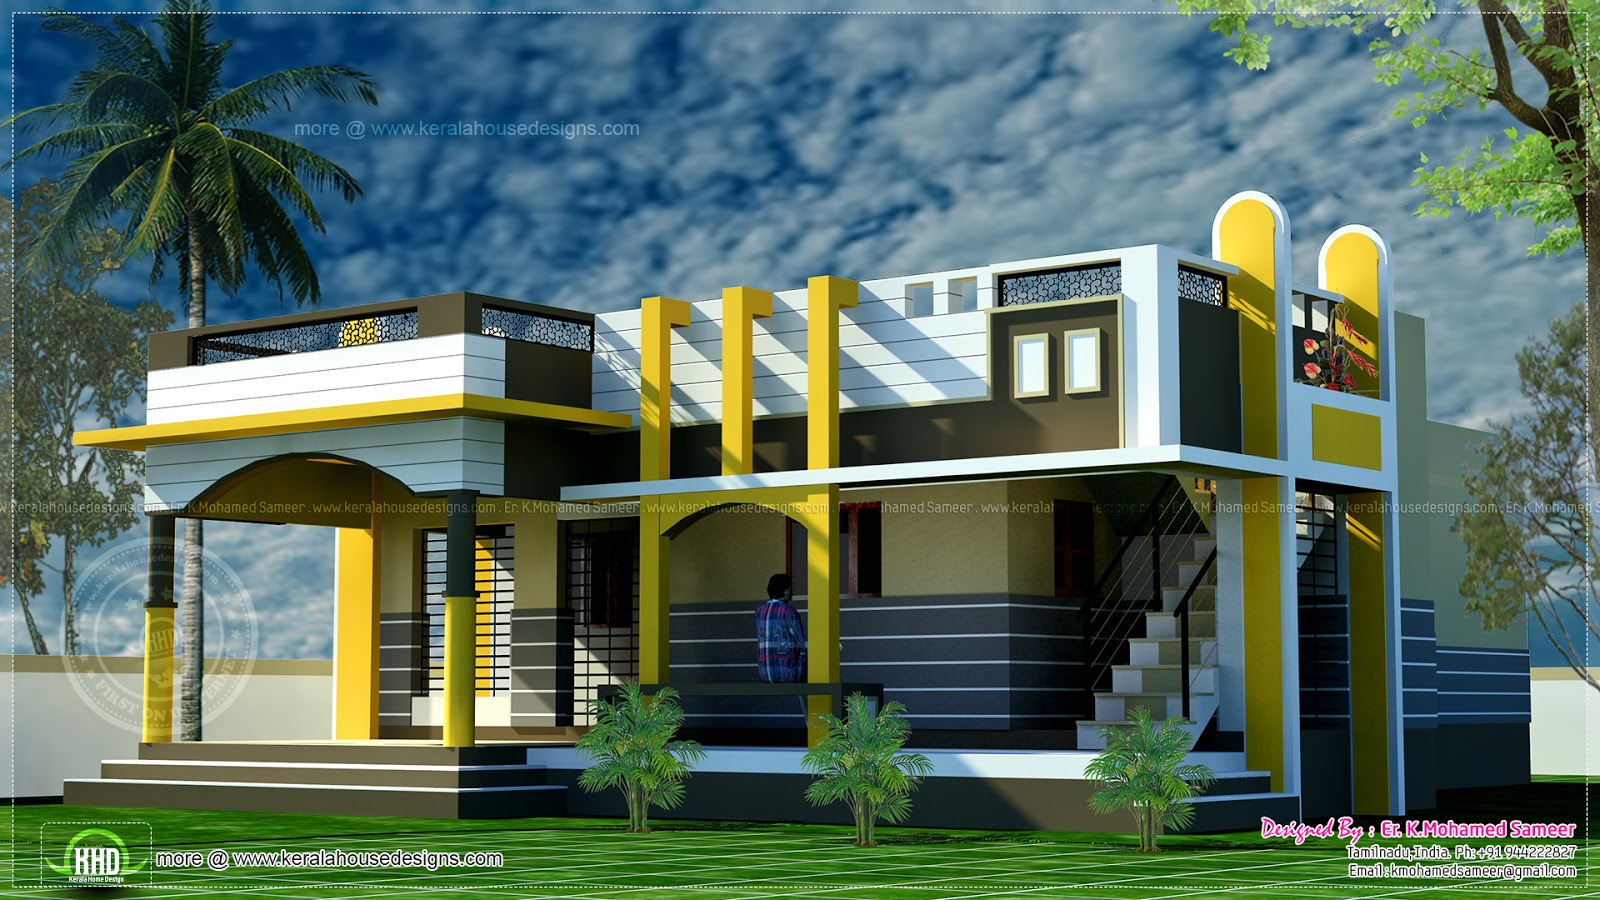 Small house design contemporary style home kerala plans for Small house design plans in india image